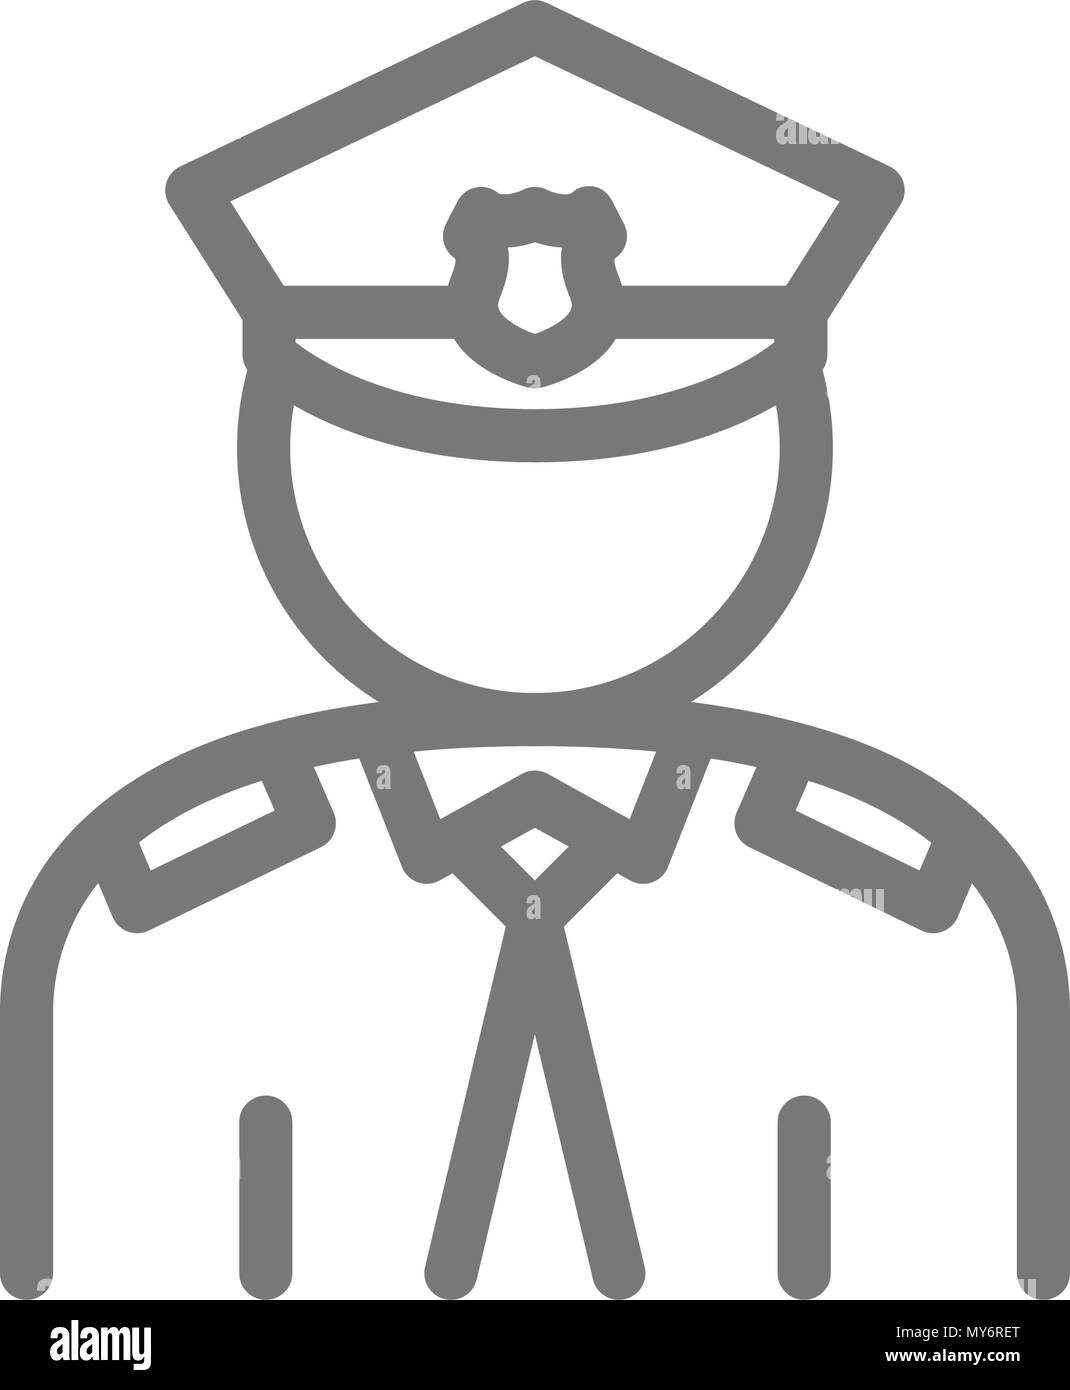 Simple police, officer, cop line icon. Symbol and sign vector illustration design. Isolated on white background - Stock Image